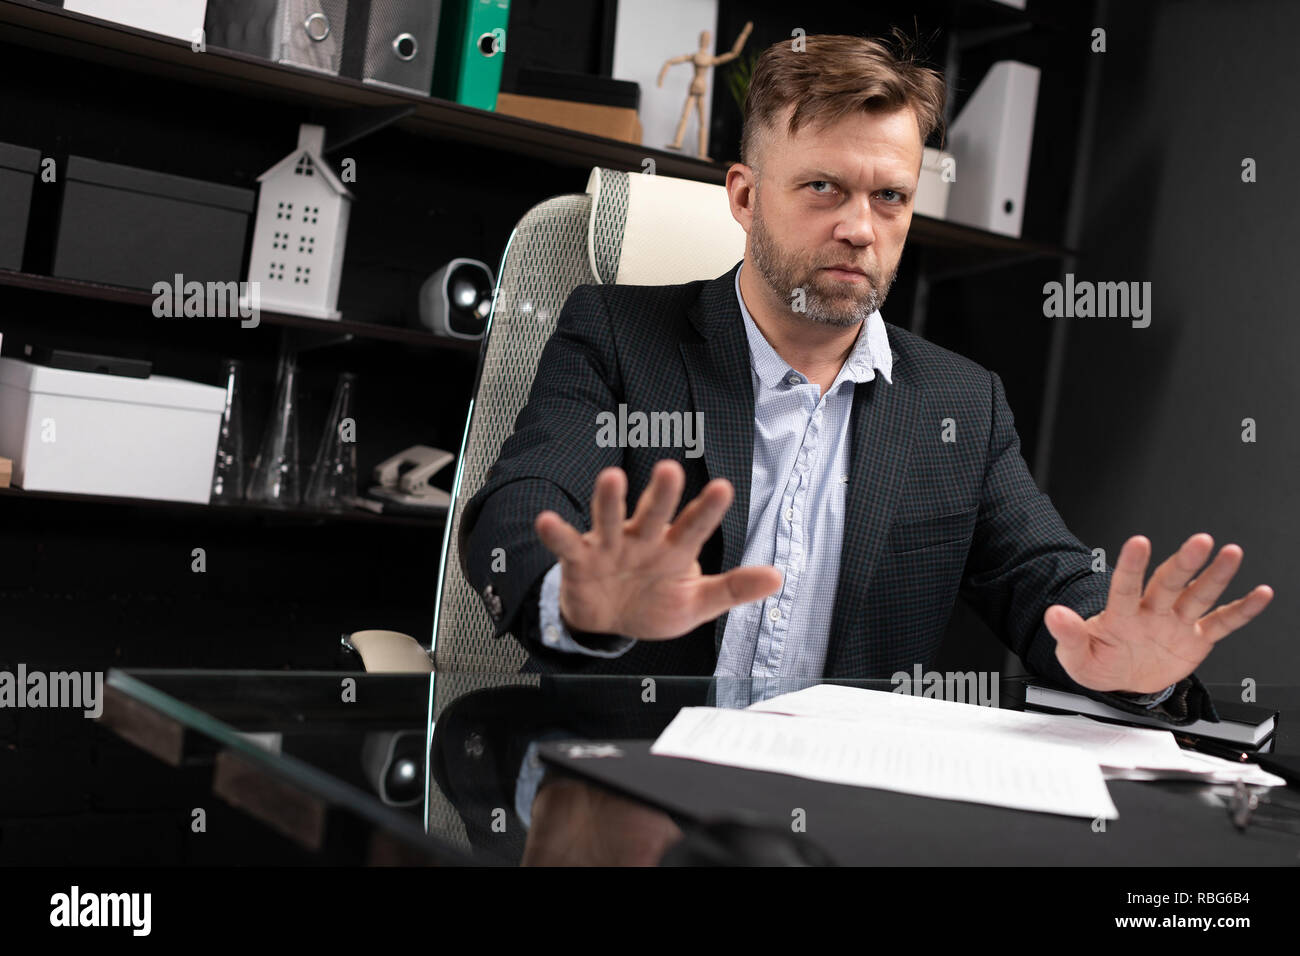 Businessman conducting an interview in stylish office - Stock Image